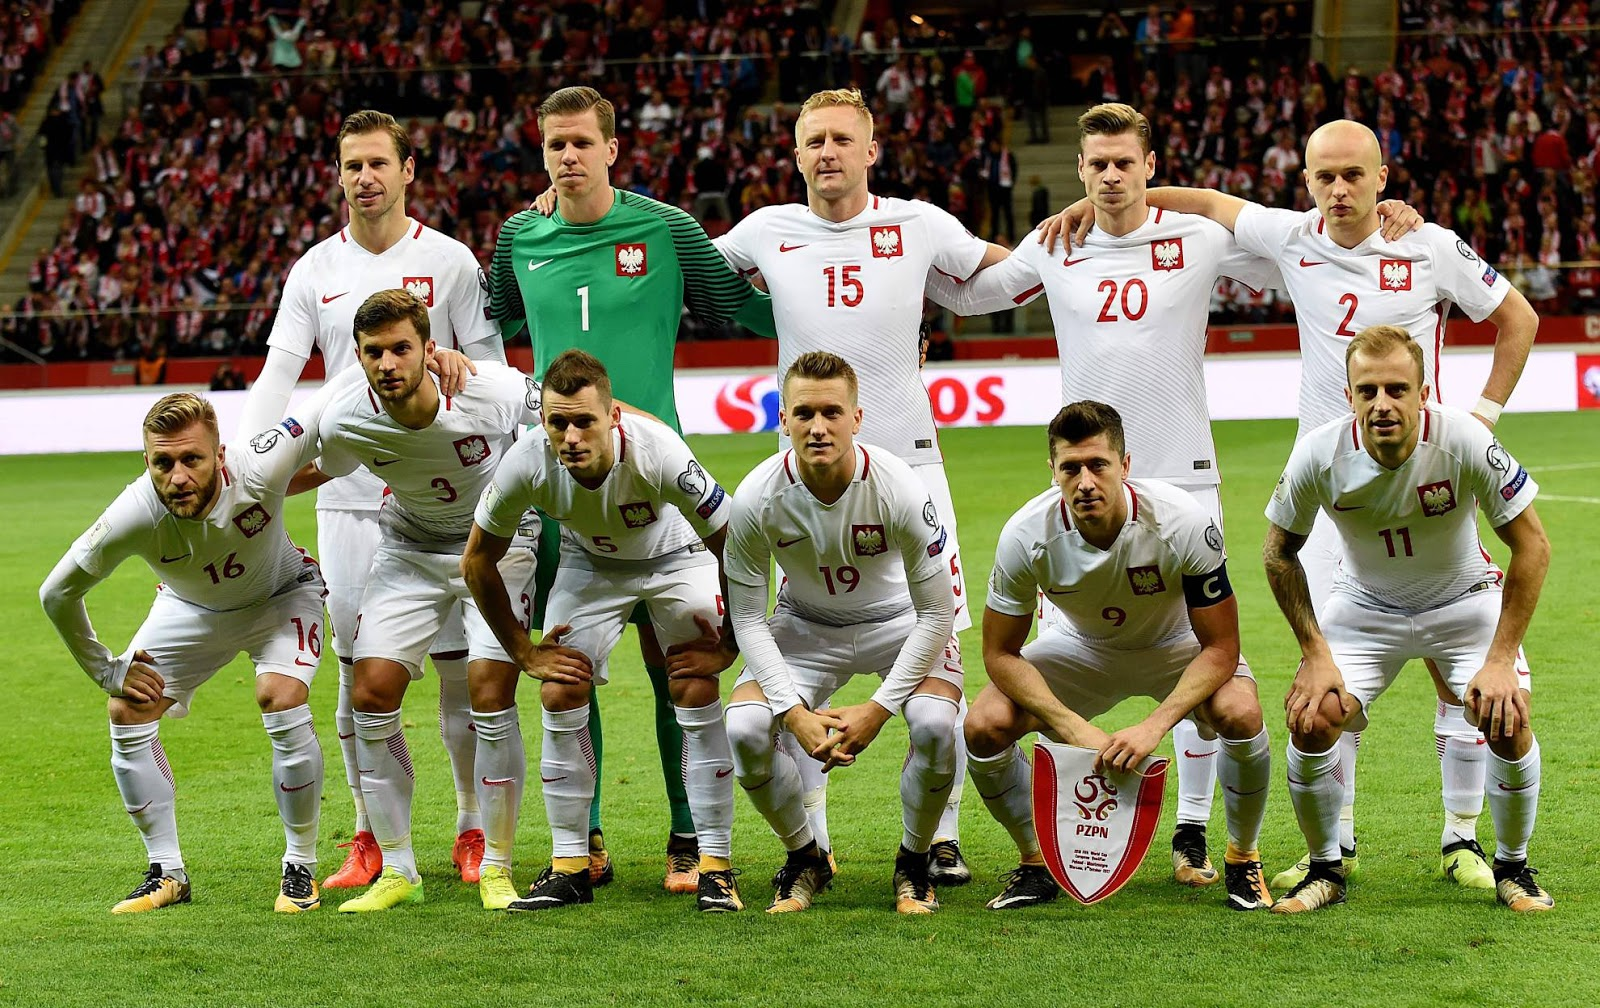 Information about Poland national team 2018